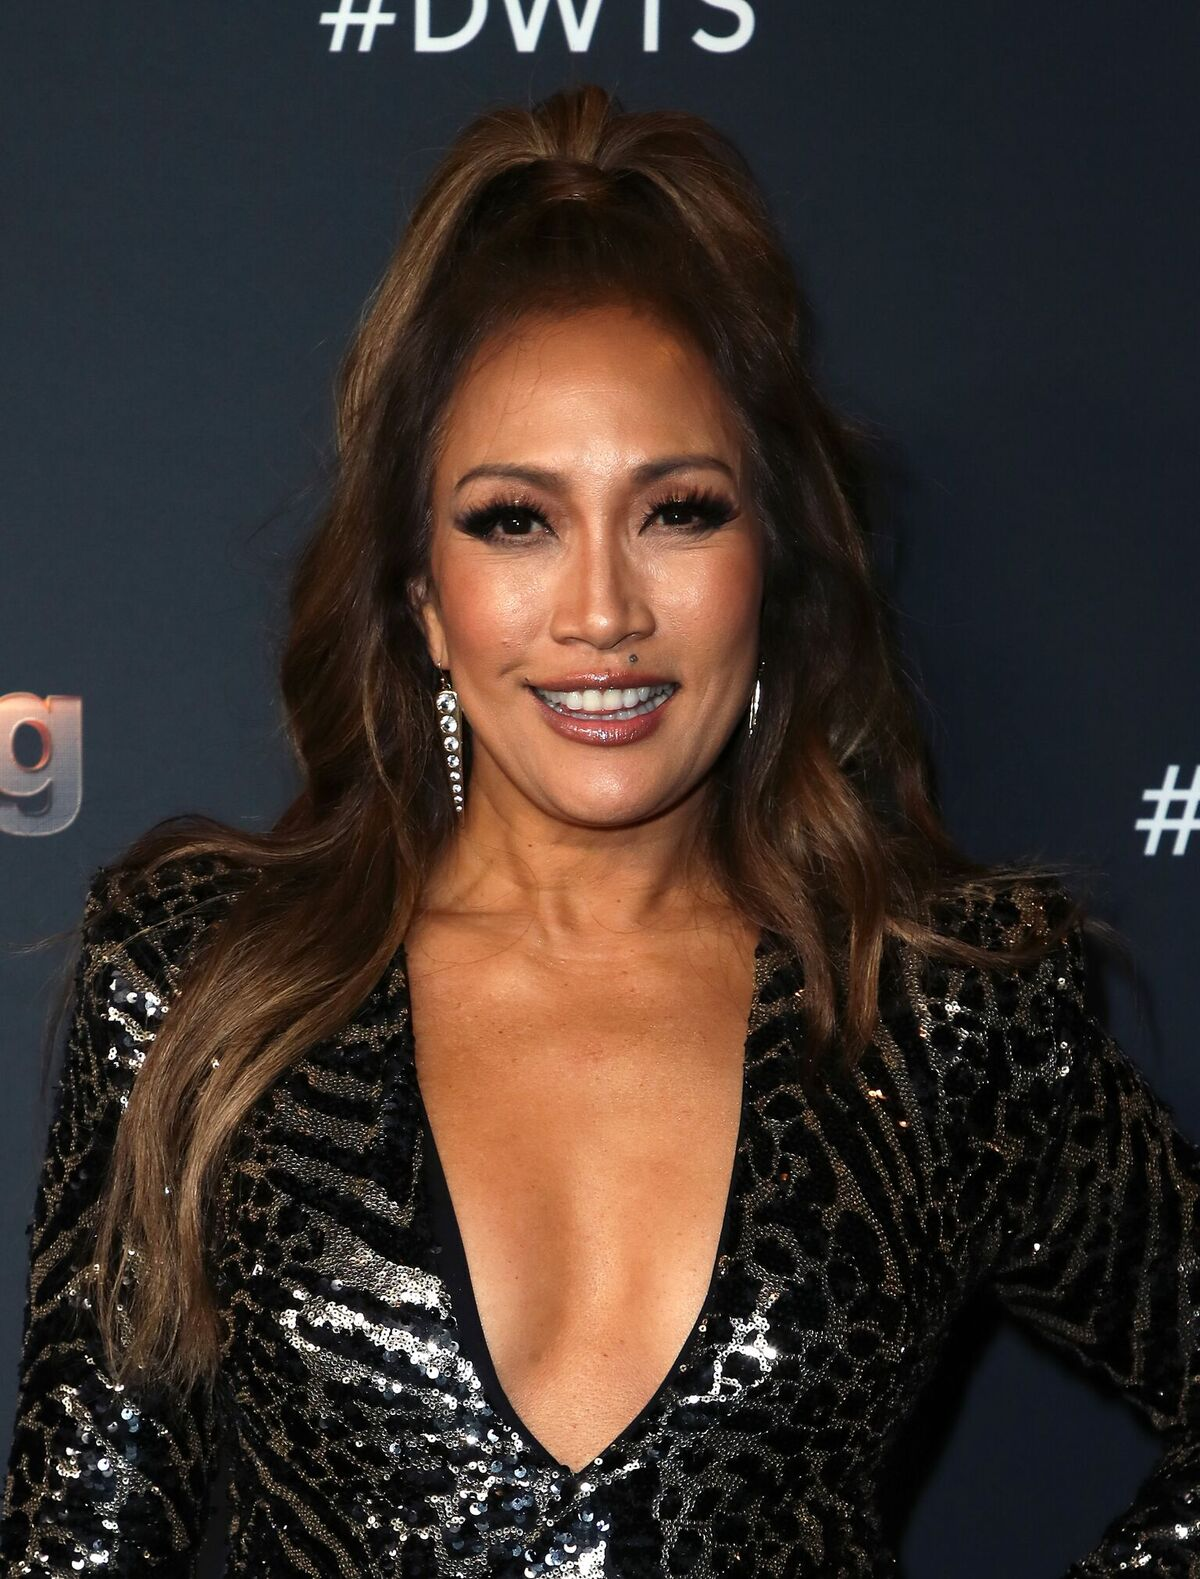 """Carrie Ann Inaba attends """"Dancing With The Stars"""" Season 28 Top 6 Finalists at Dominque Ansel at The Grove on November 04, 2019 in Los Angeles, California 